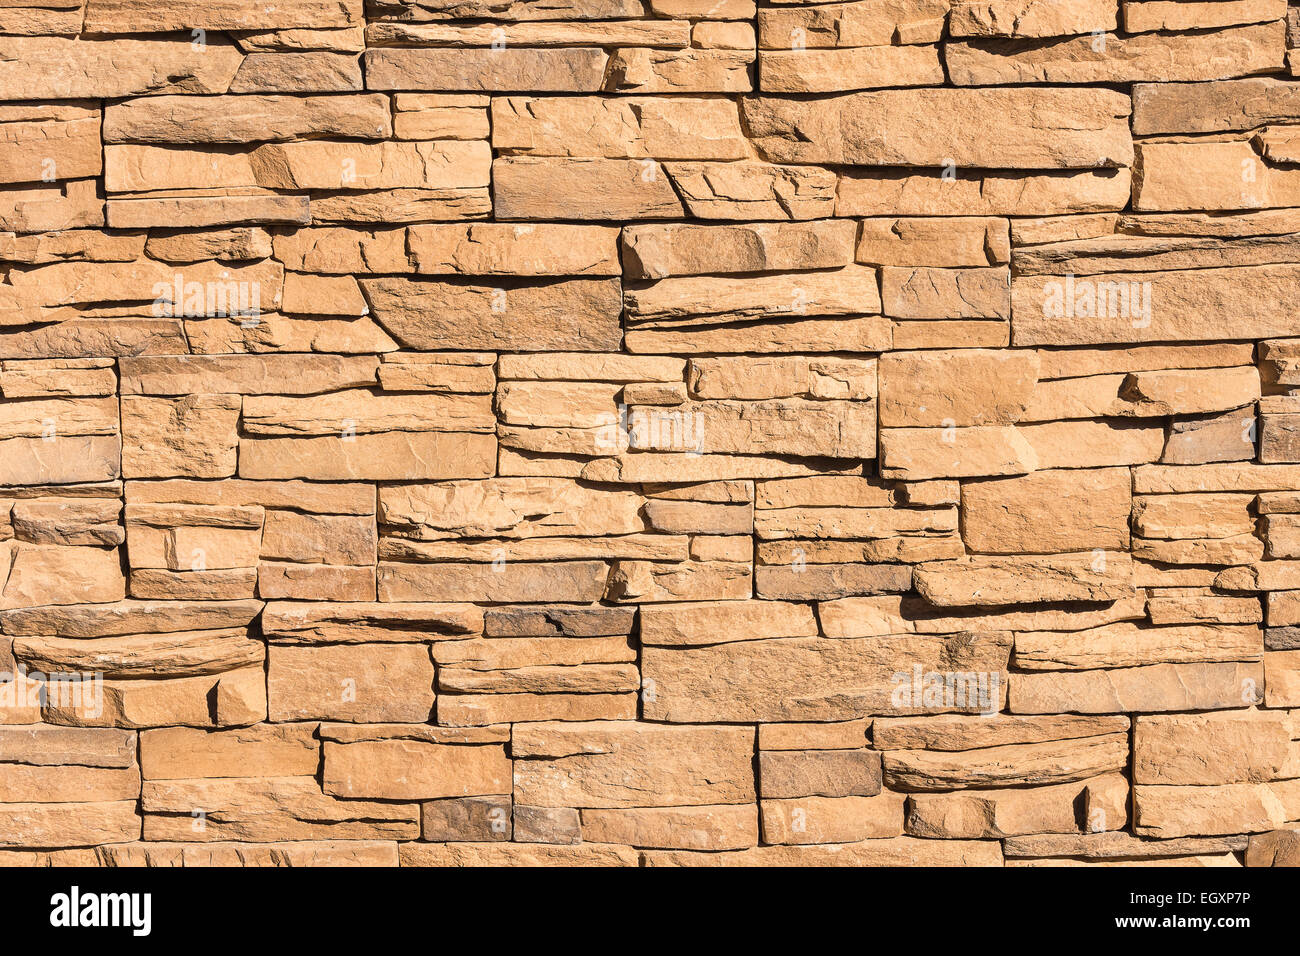 Fantastic Seamless Decorative Stone Wall Textures Gallery - The Wall ...